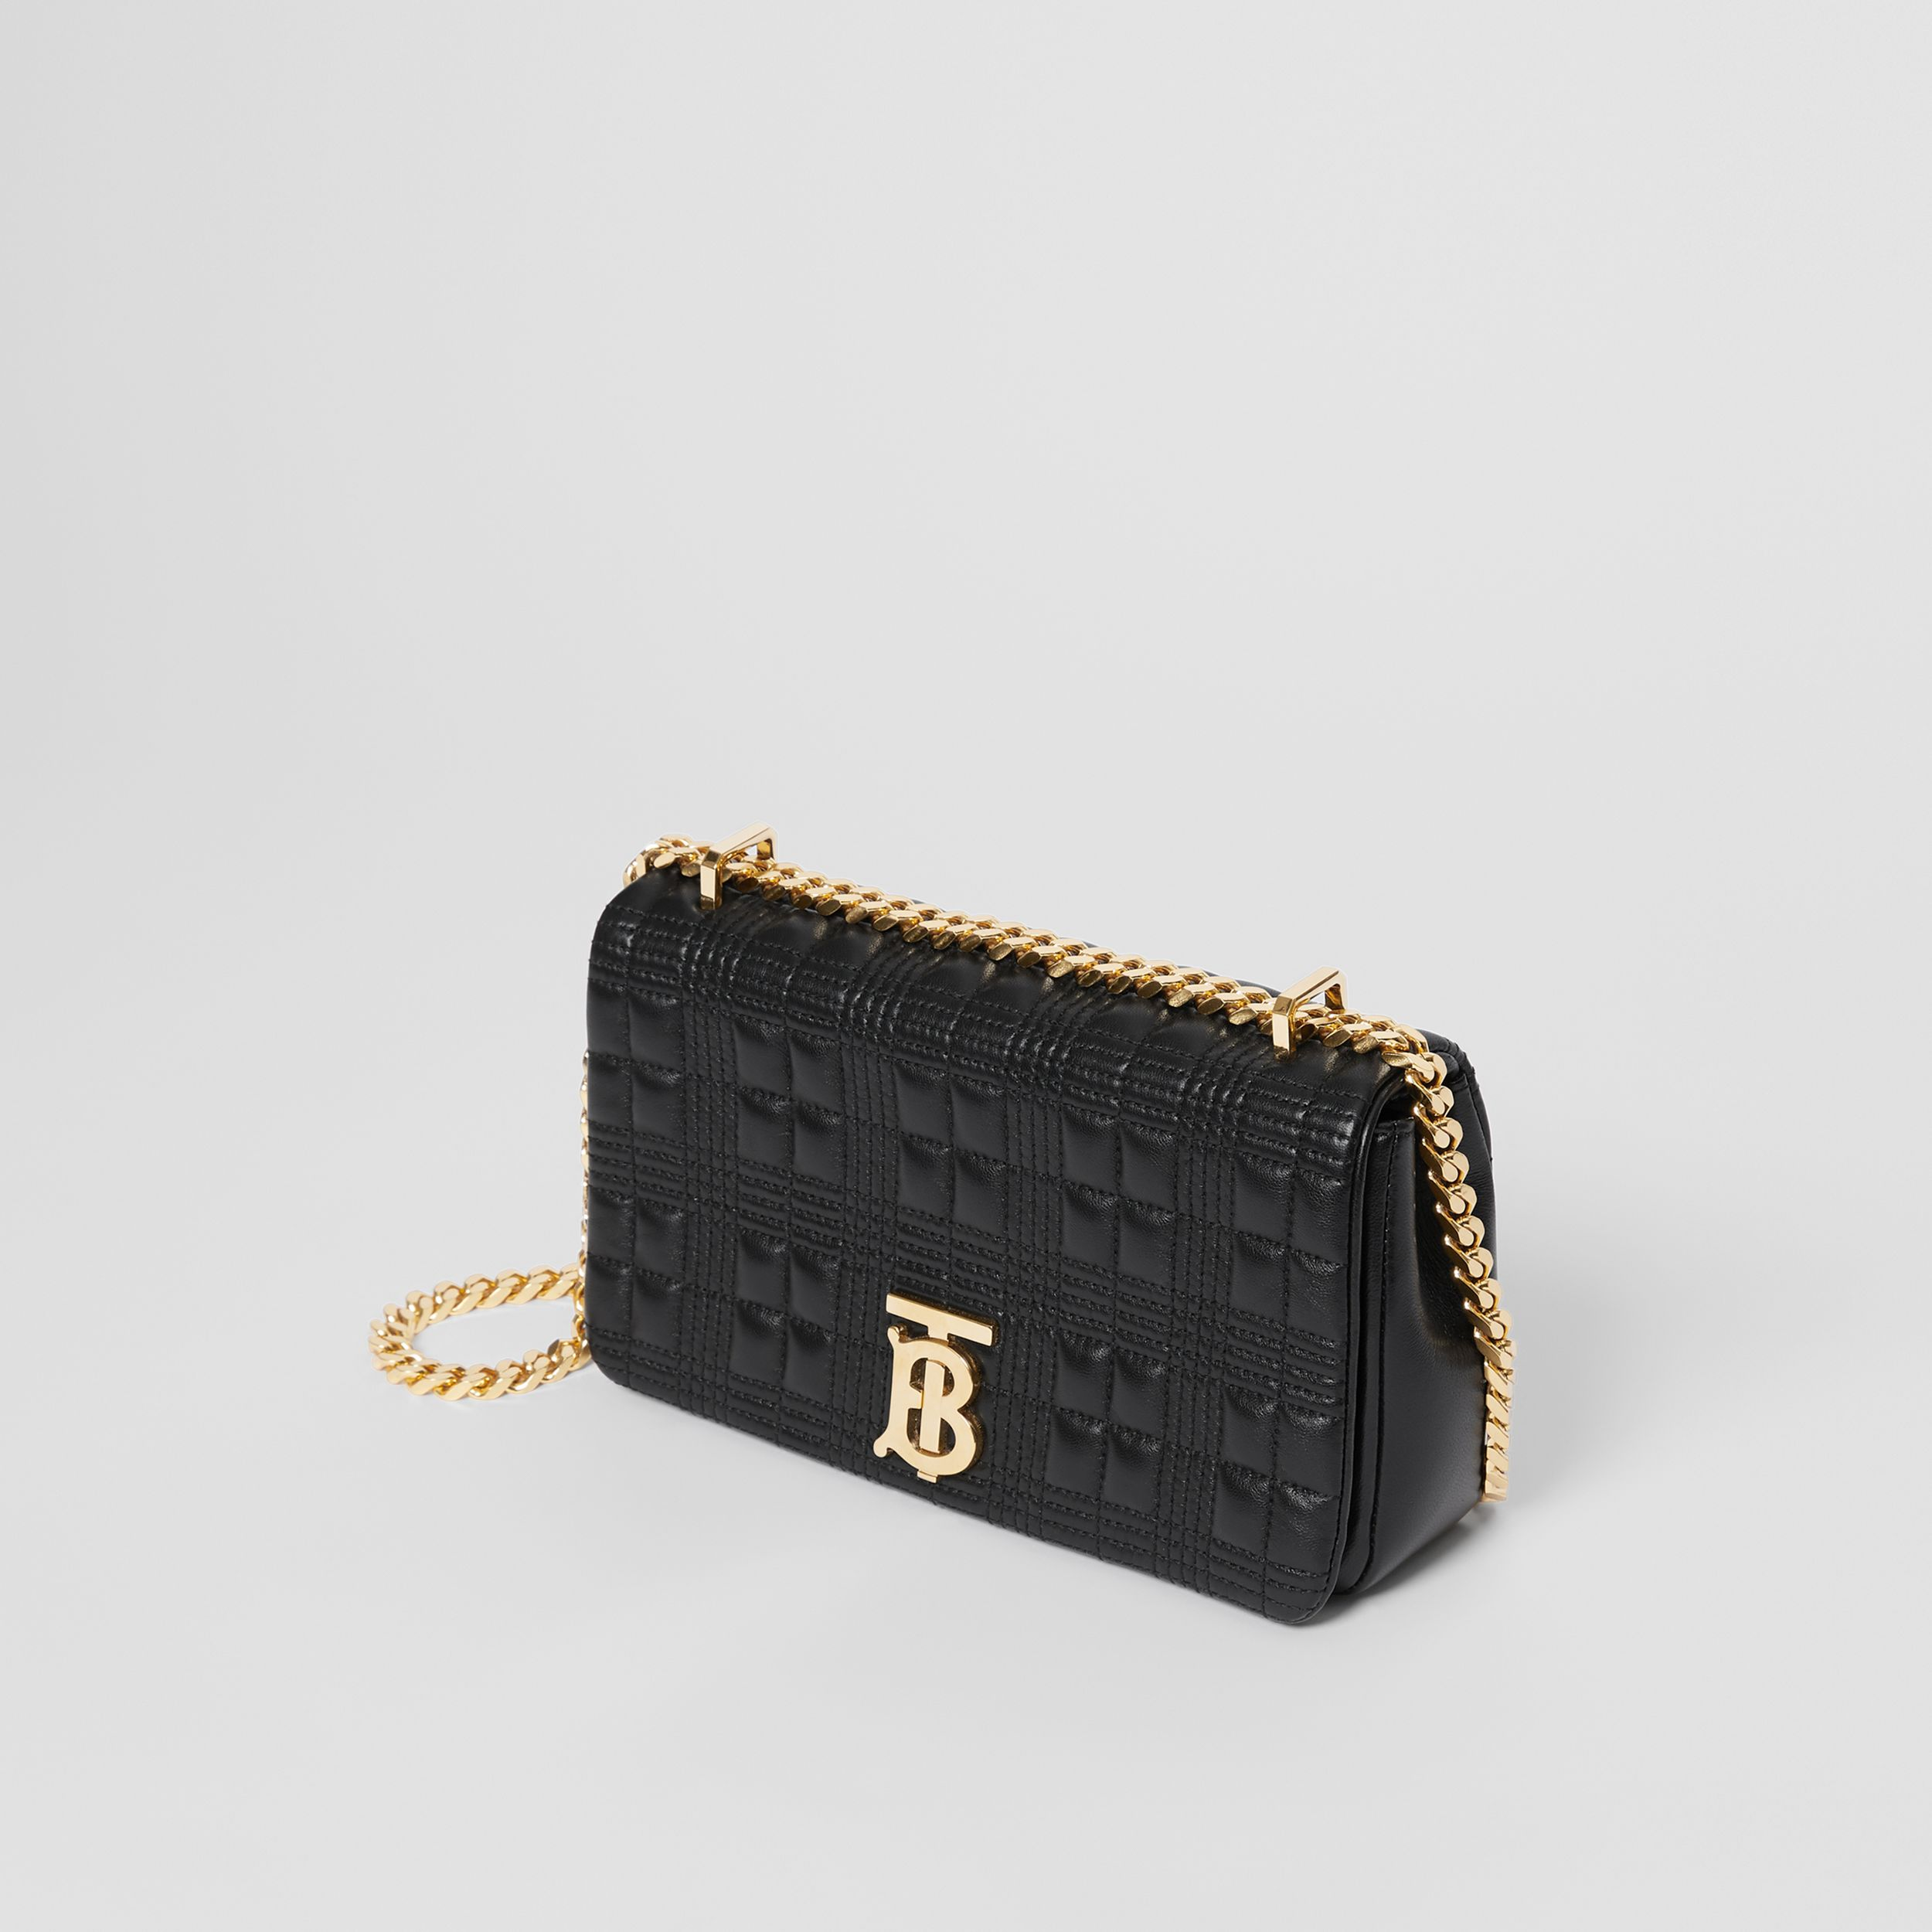 Small Quilted Lambskin Lola Bag in Black/light Gold - Women | Burberry - 4